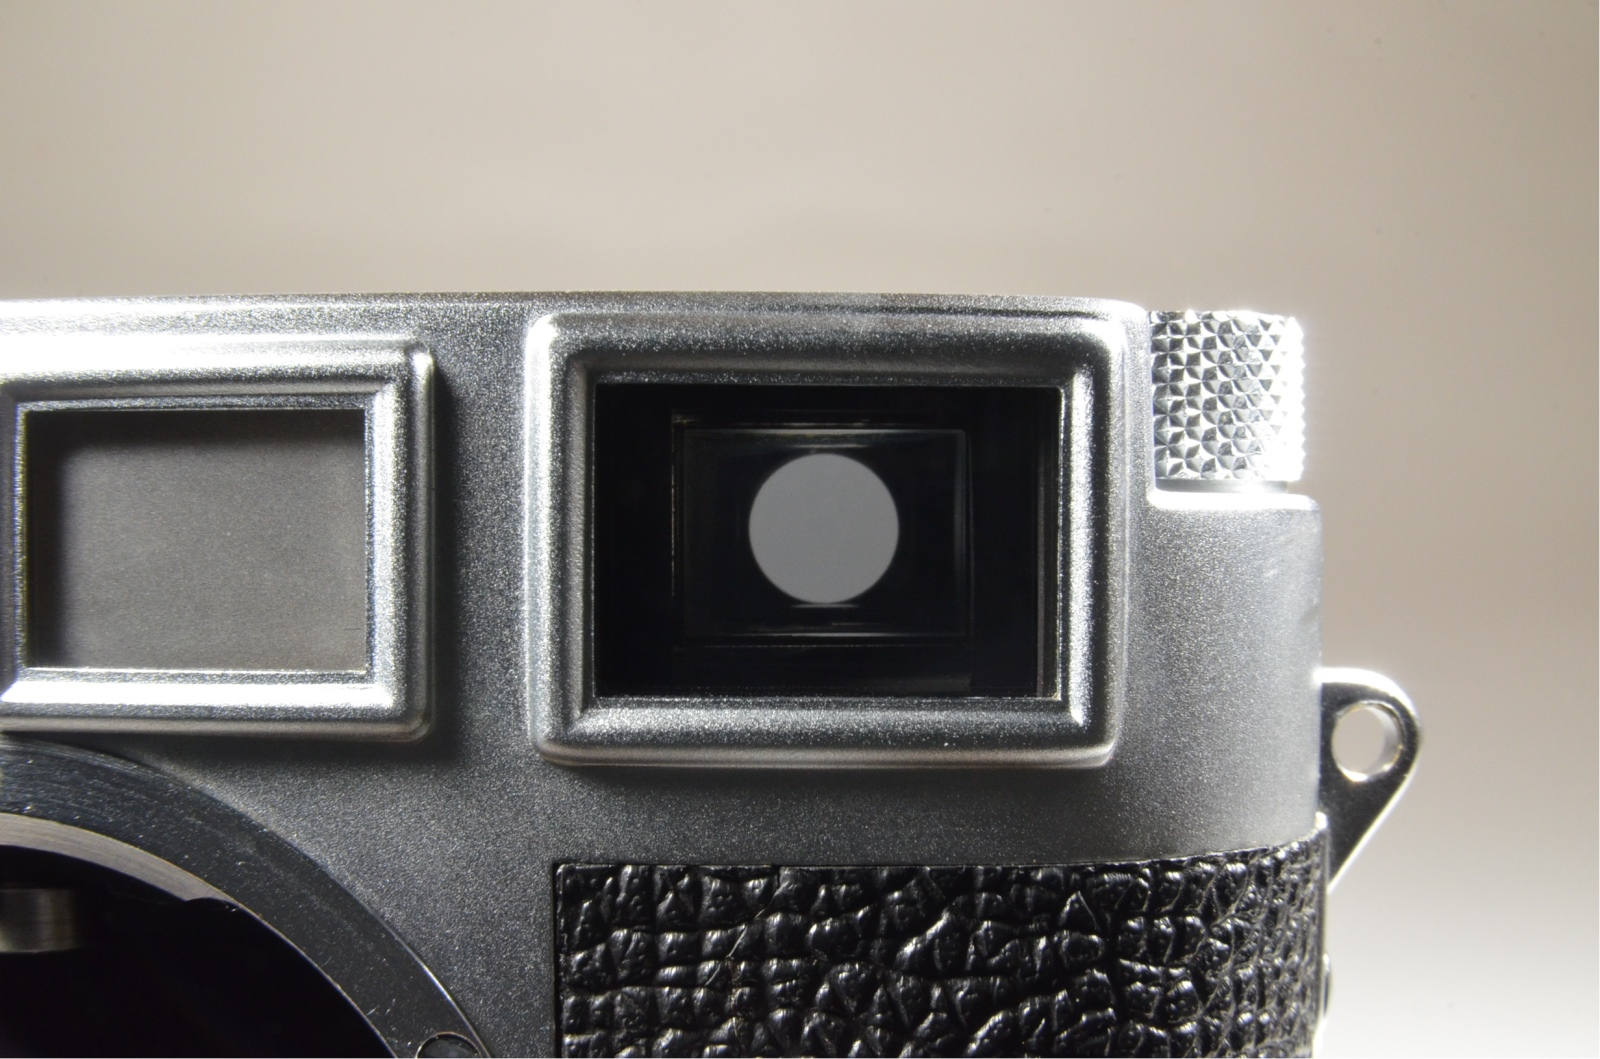 leica m3 double stroke s/n 918819 year 1958 with strap from japan